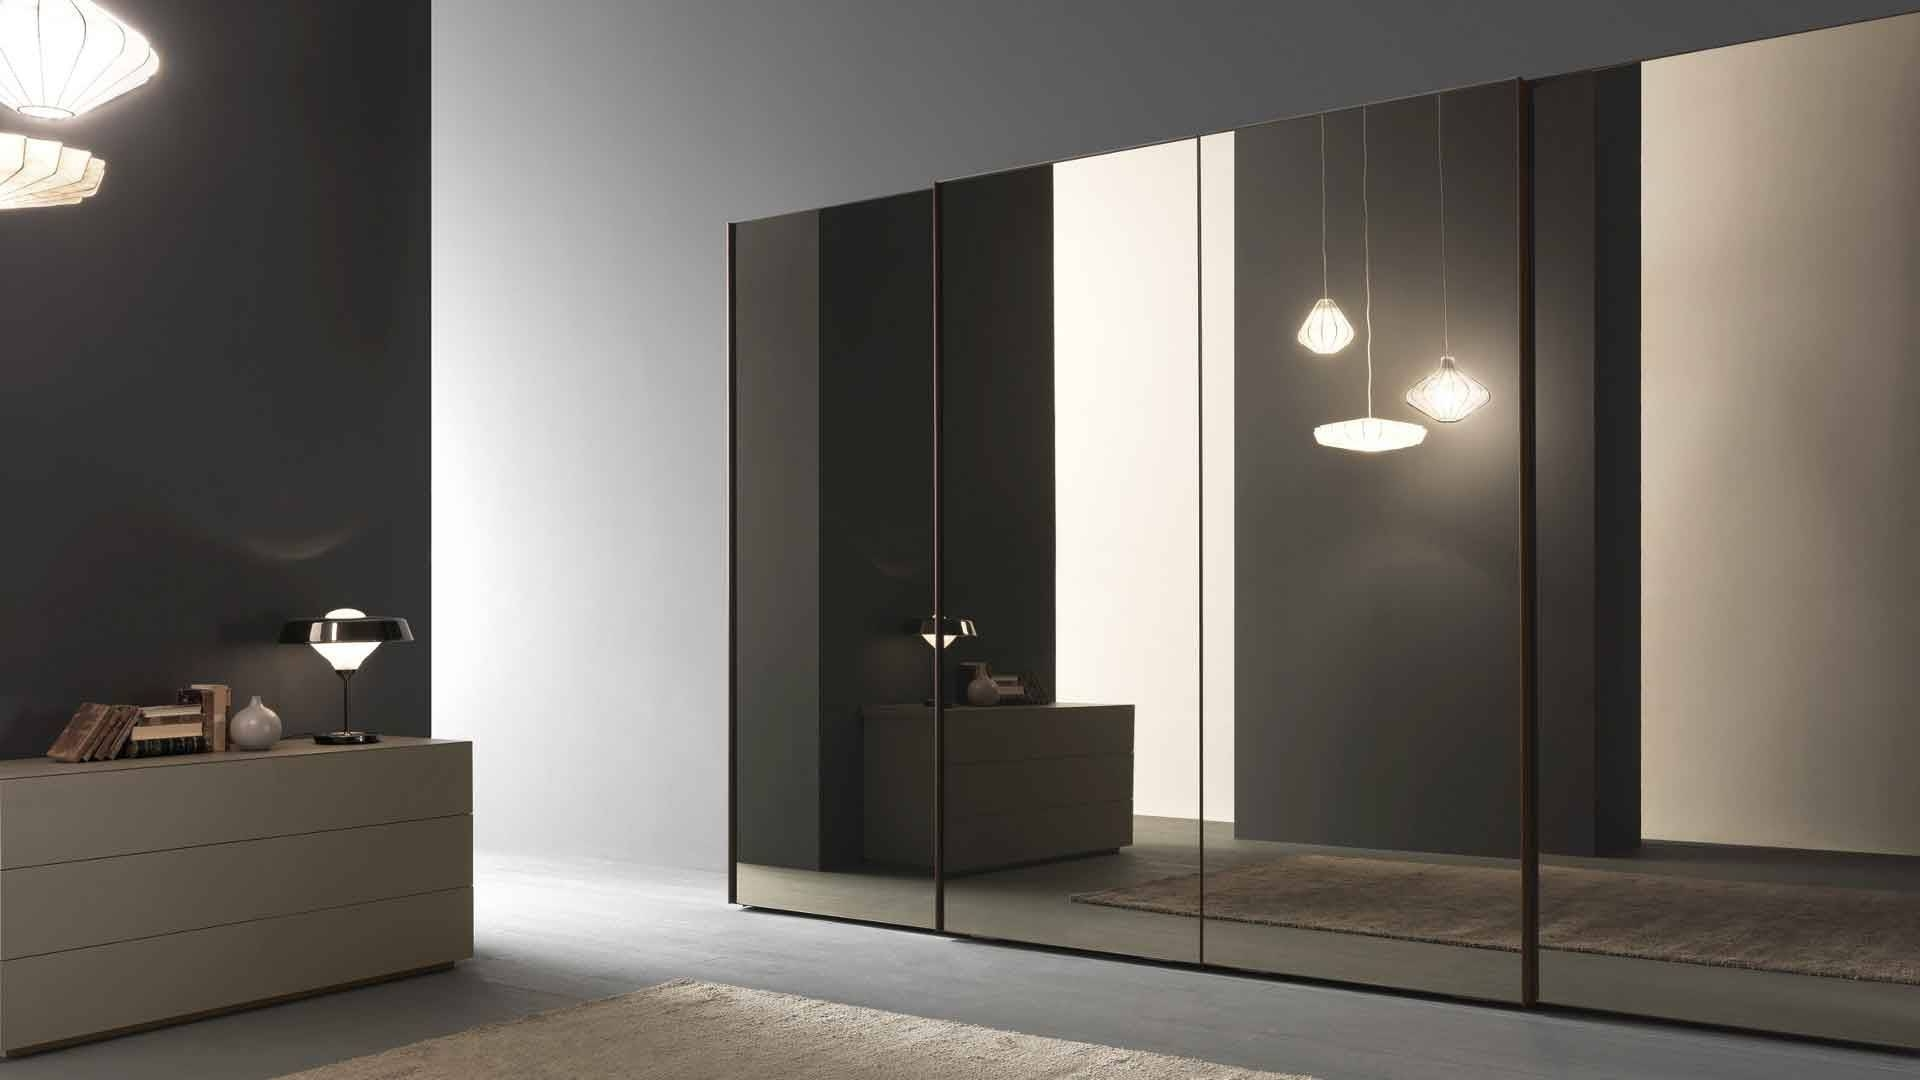 Glass Sliding Wardrobe Doors With Minimalist Style : Home Design With Dark Wood Wardrobe With Mirror (View 20 of 30)